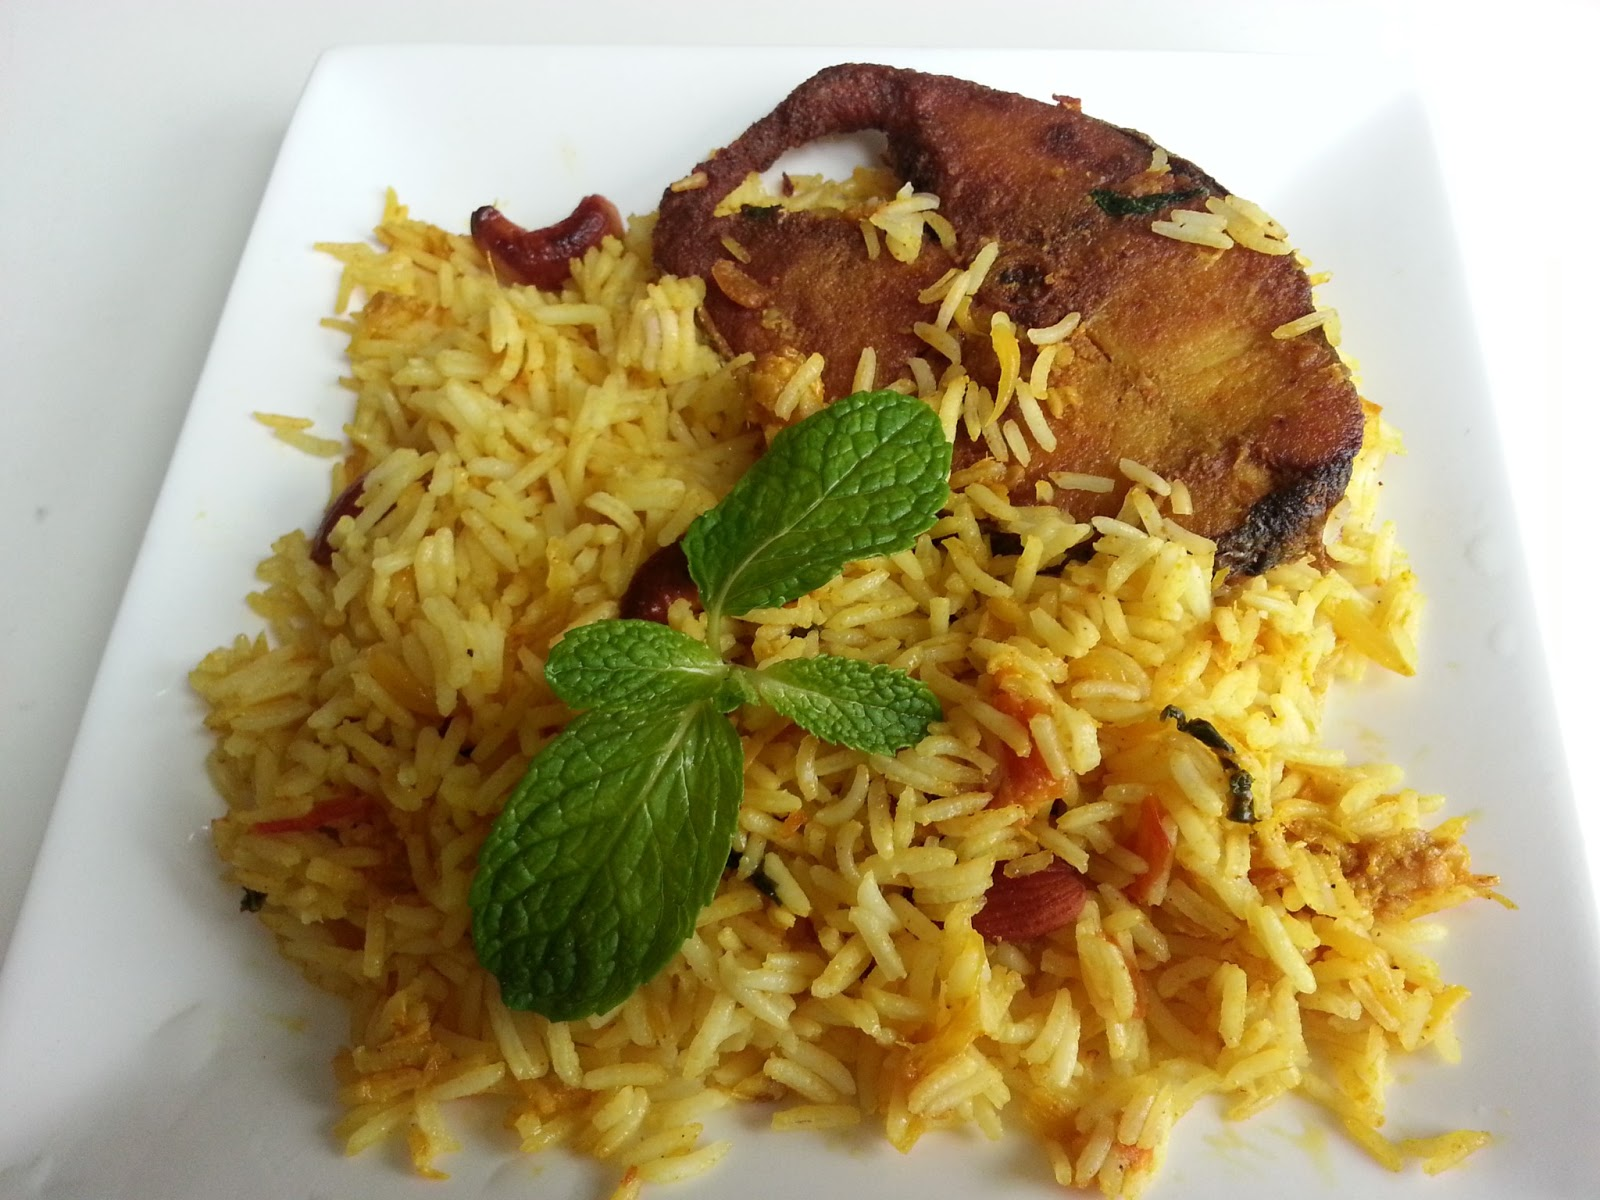 Best Fish Biryani In Hyderabad